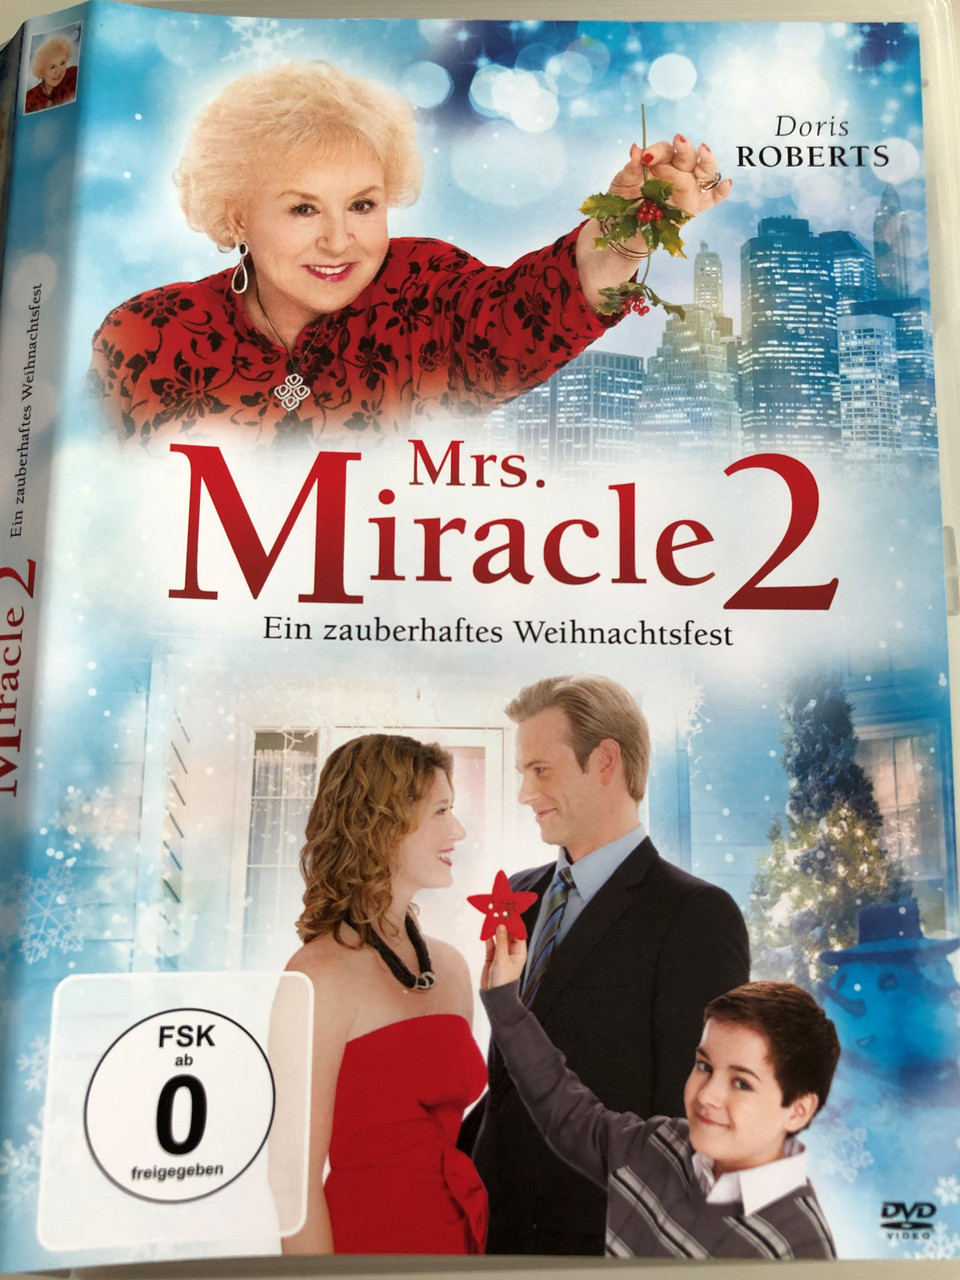 Alle Filme Mit Queen Latifah call me mrs. miracle dvd 2010 mrs. miracle 2 / directedmichael m. scott  / starring: doris roberts, jewel staite, erich johnson / based on the book